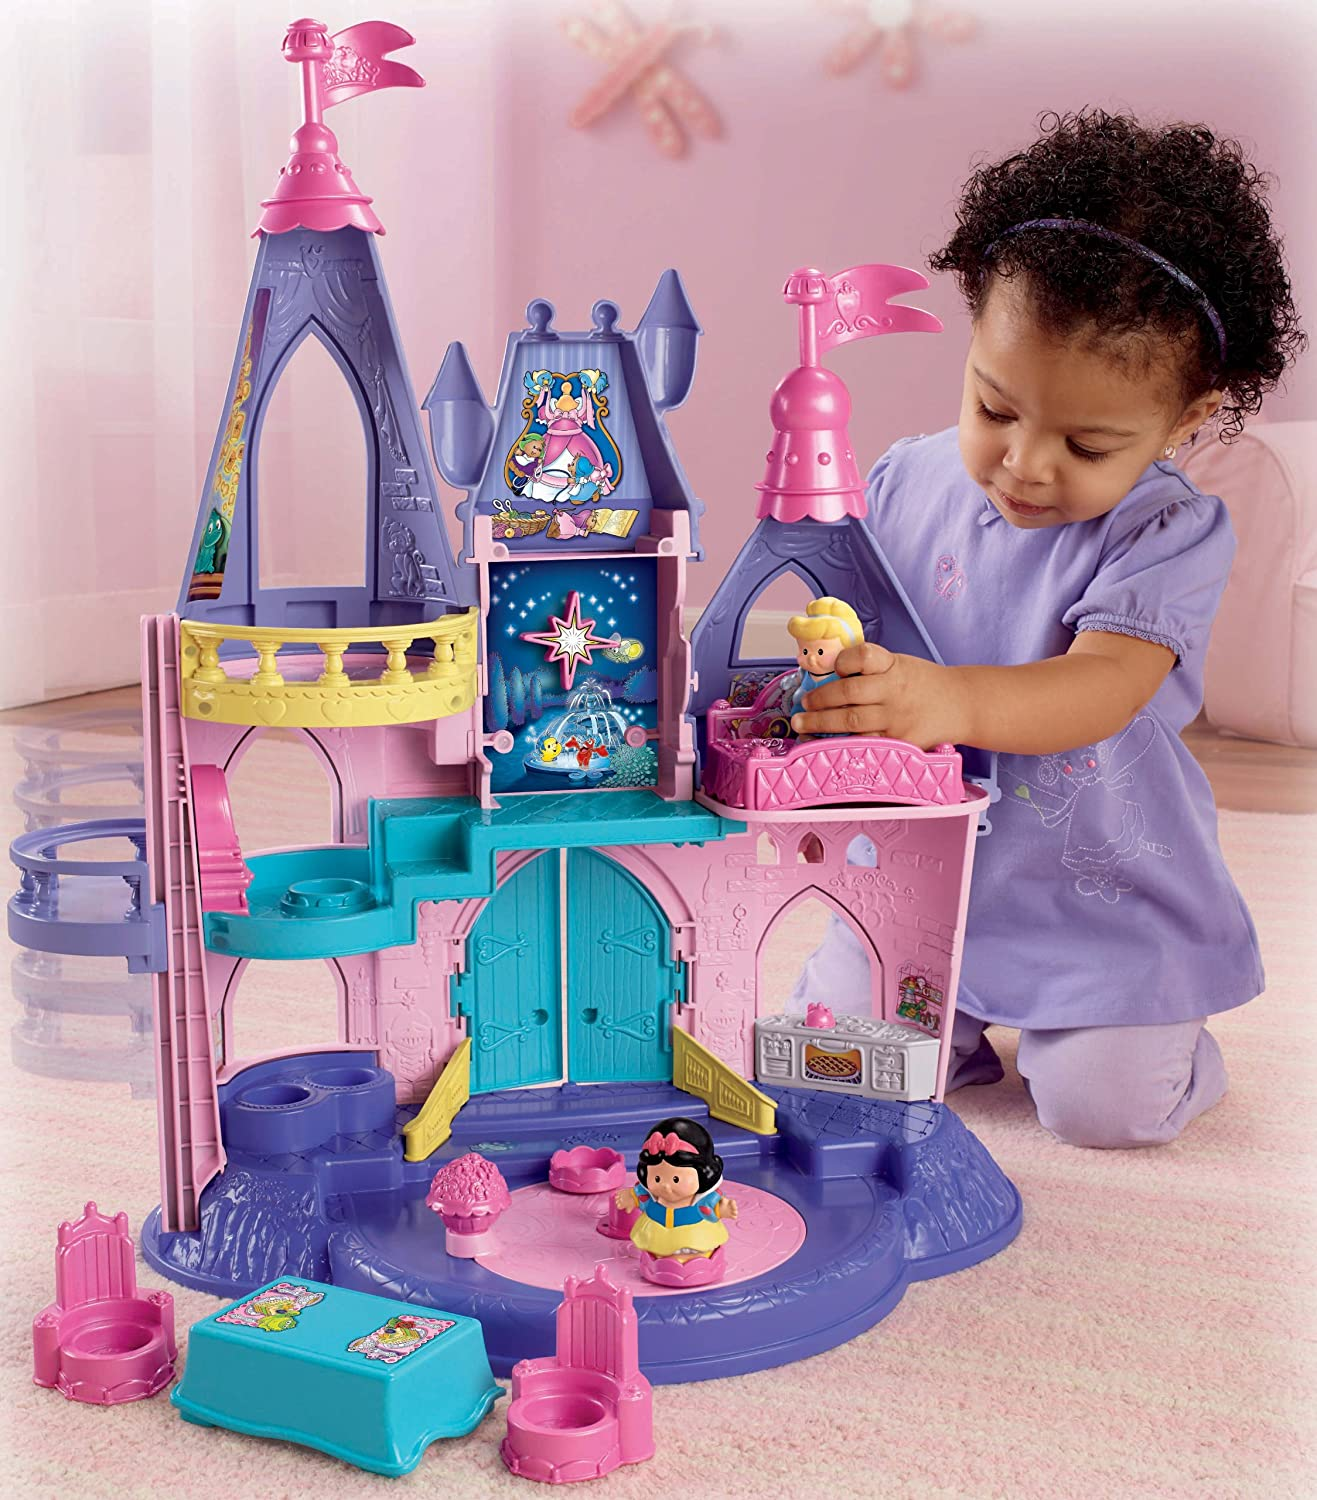 Toys For Girls 18 Months : Princess toys for year old girls best